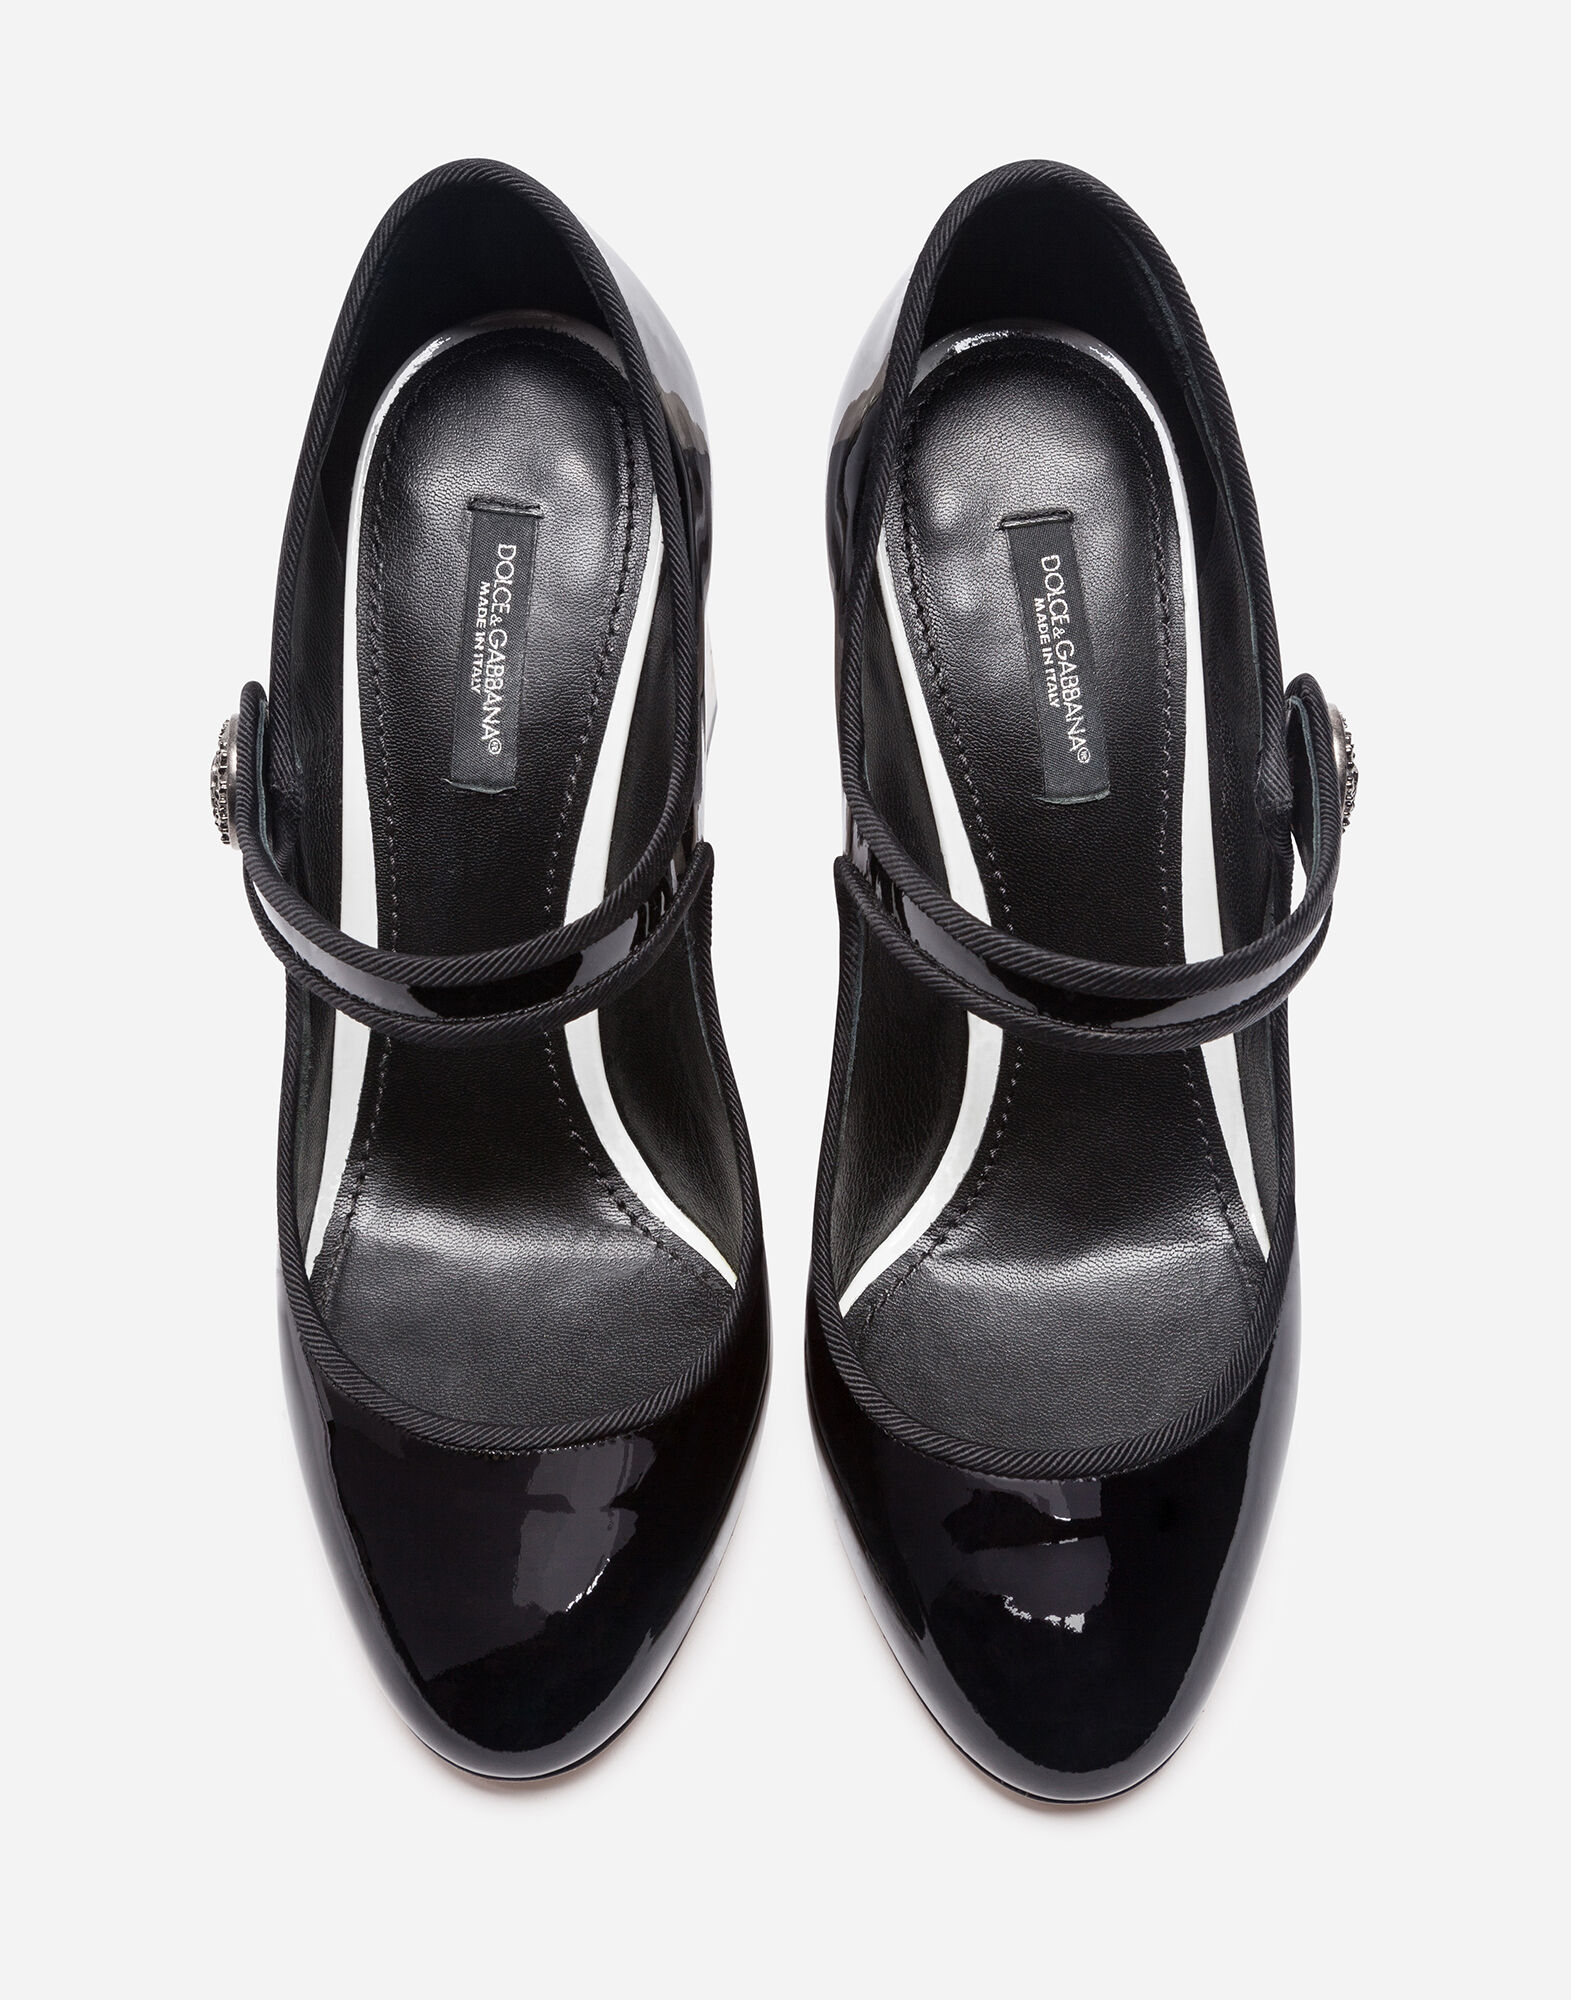 Dolce&Gabbana PATENT MARY JANES